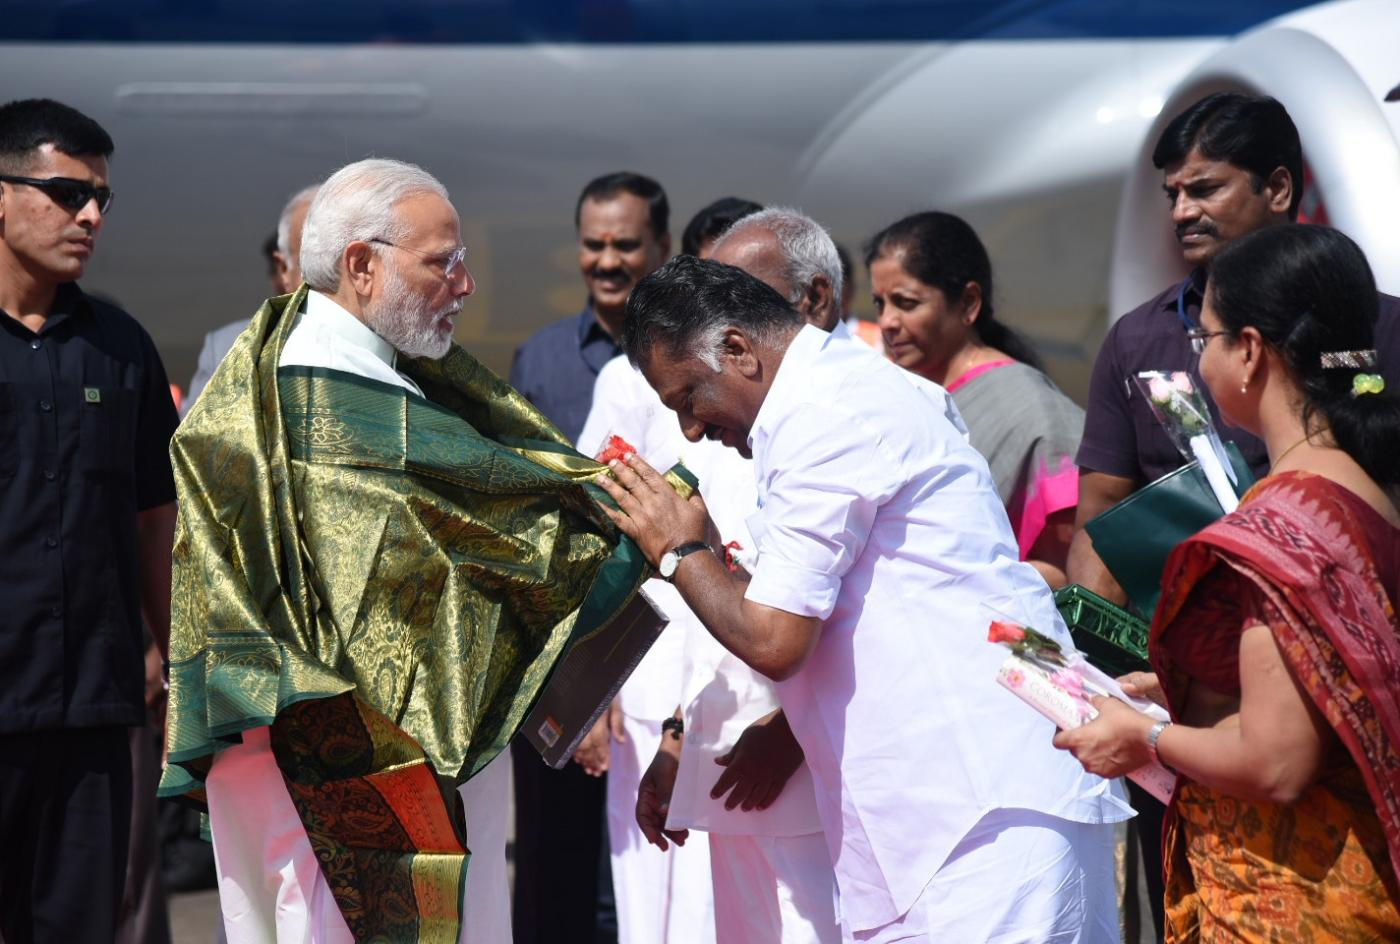 Chennai: Prime Minister Narendra Modi being welcomed by the Deputy Chief Minister of Tamil Nadu O. Panneerselvam, on his arrival, at Chennai, Tamil Nadu on April 12, 2018. (Photo: IANS/PIB) by .